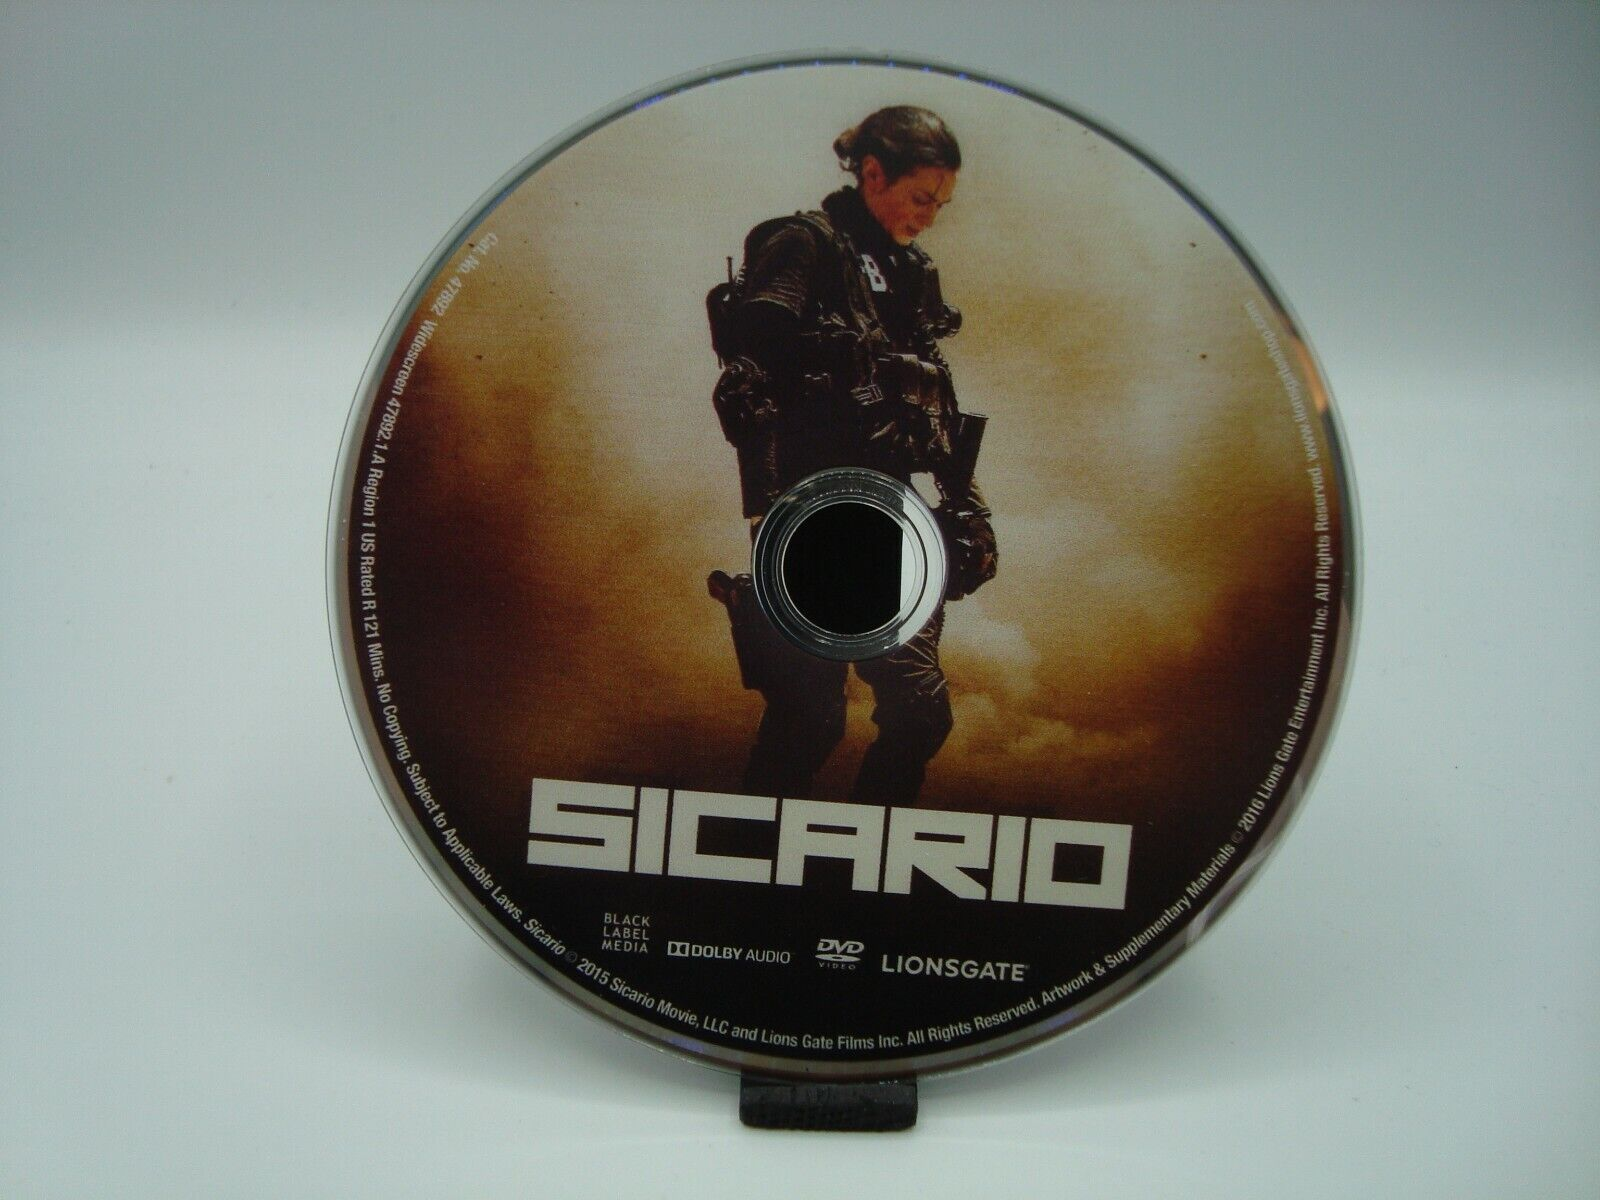 Sicario DVD DISC ONLY  - $3.50